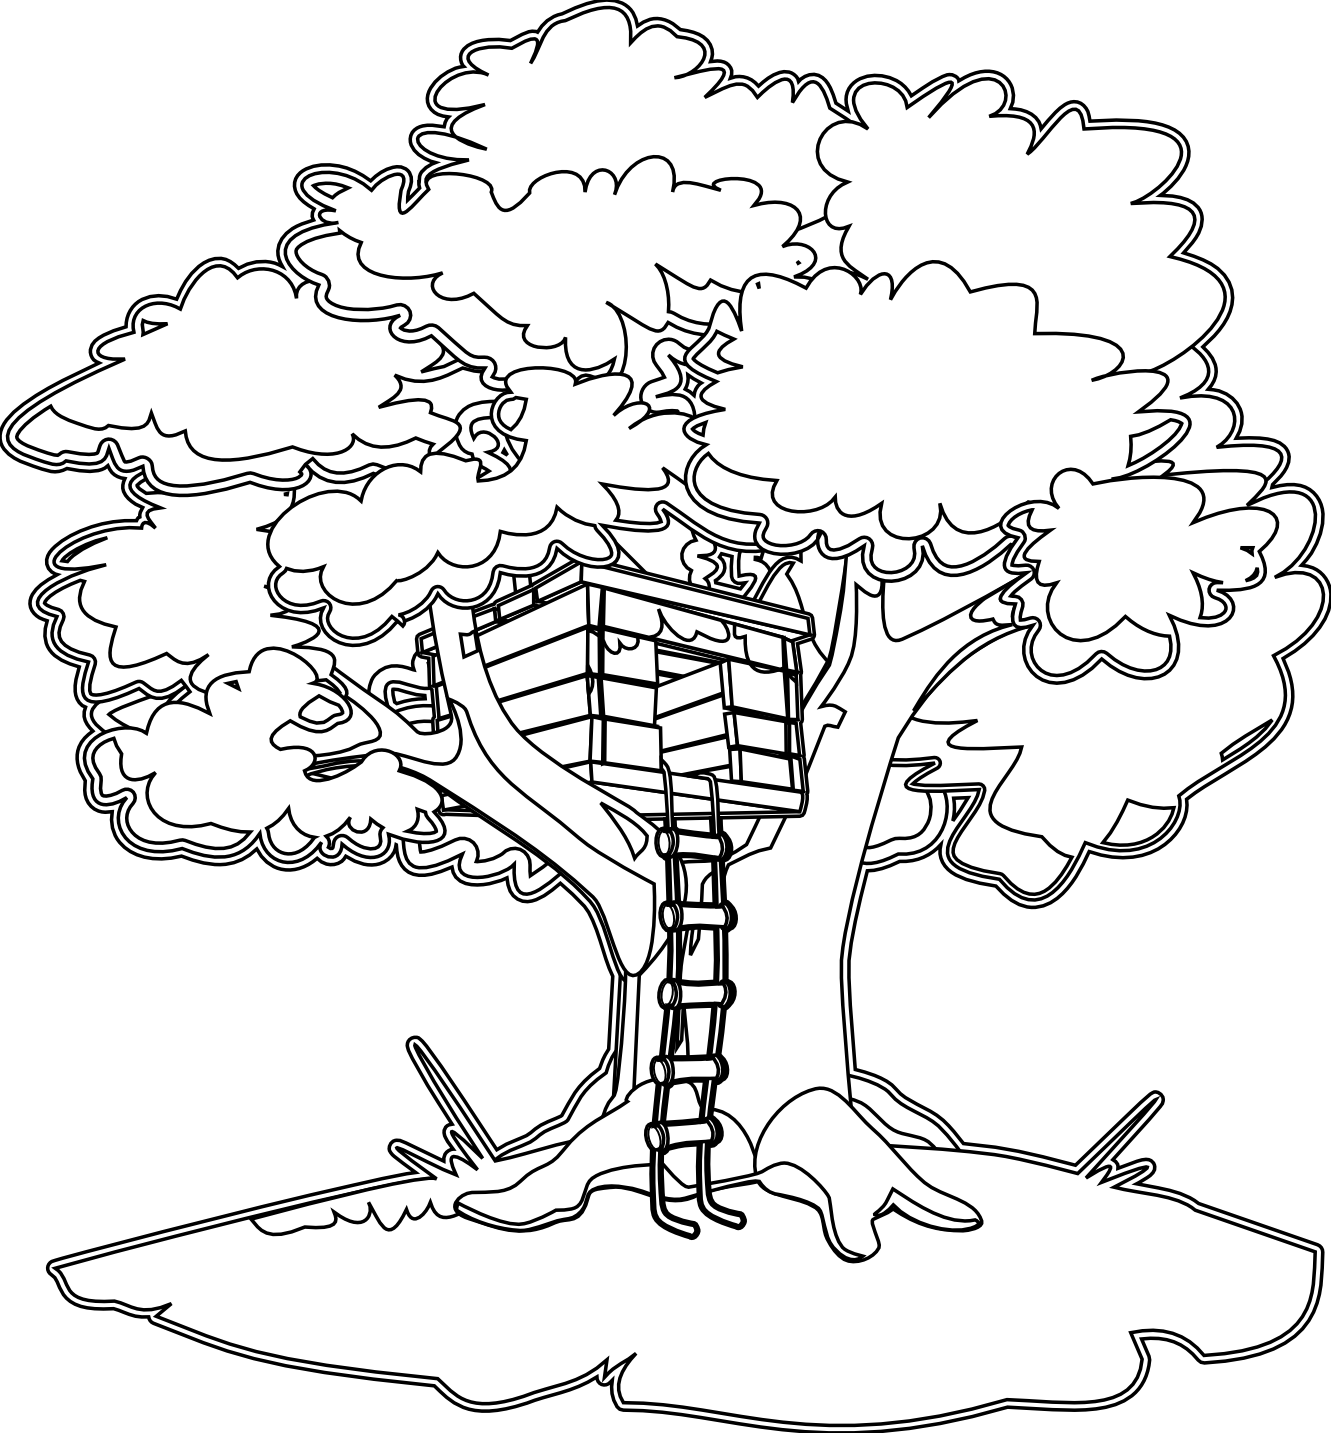 treehouse coloring pages treehouse coloring pages best coloring pages for kids pages coloring treehouse